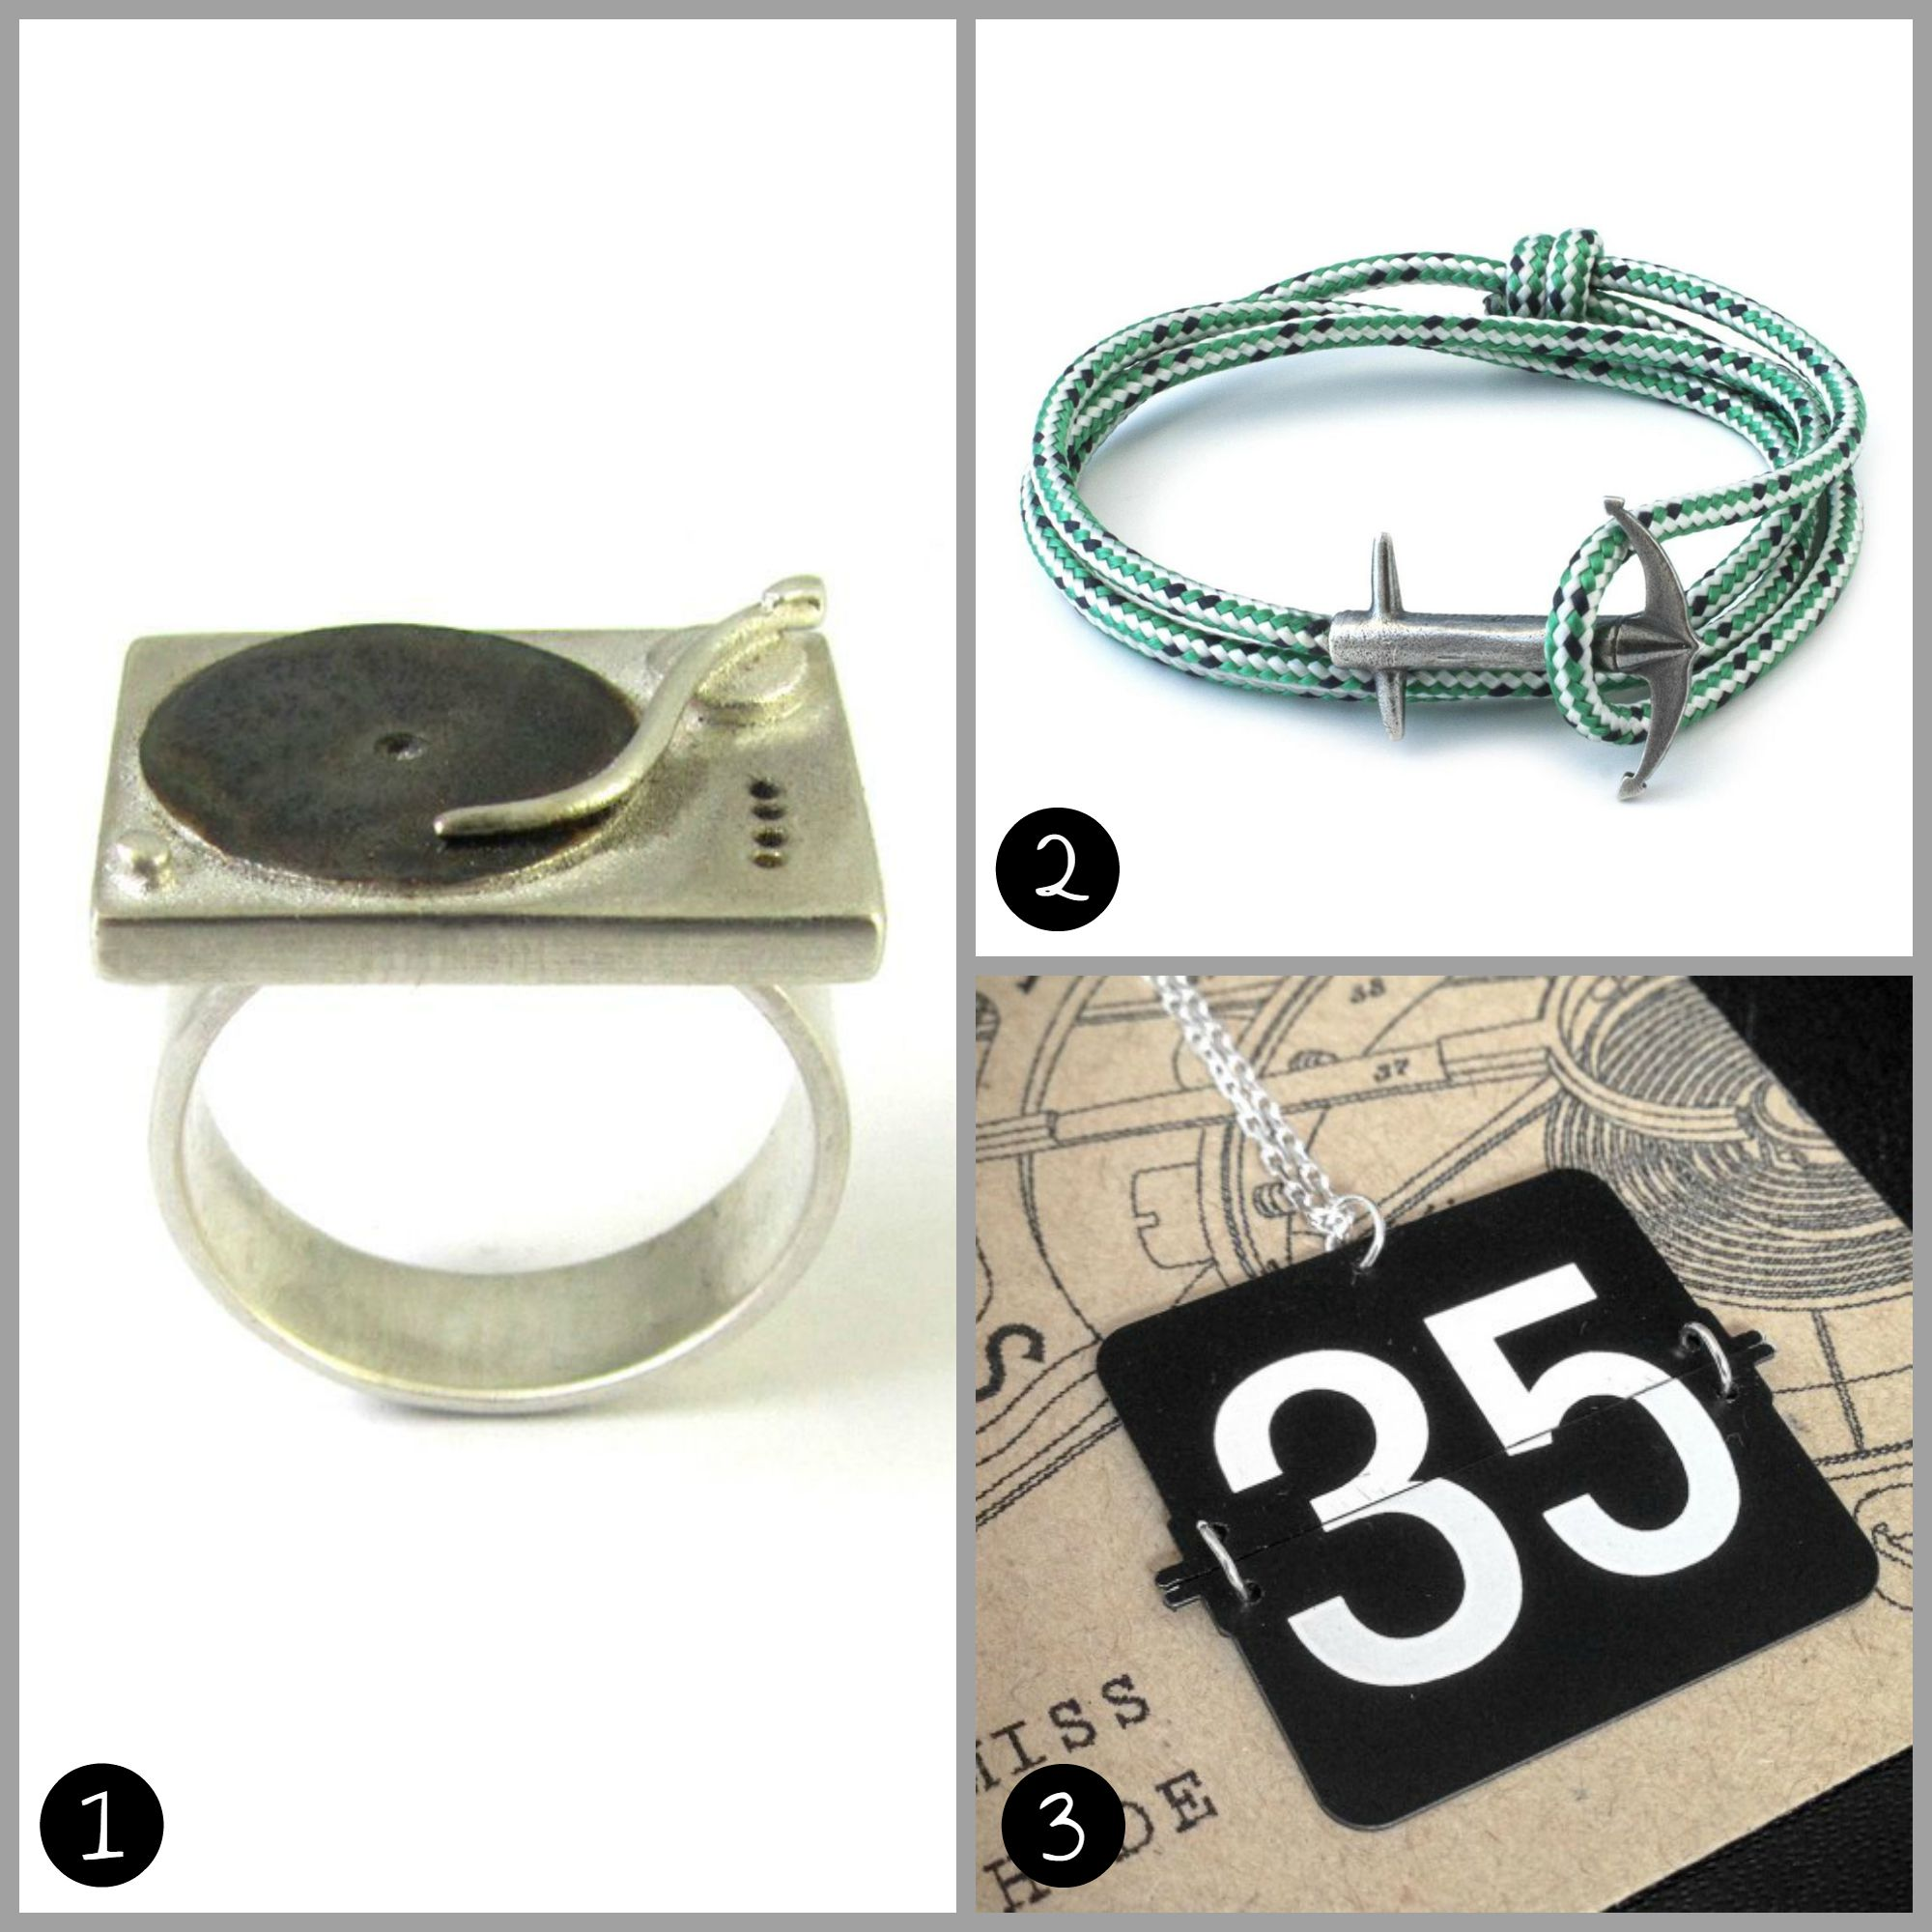 1.  CHIEF COUGAR'S 1210S TURNTABLE RING  (£92) by Bug    2.  SIGNATURE COLLECTION ADMIRAL ROPE ANCHOR BRACELET  (£70) by Anchor & Crew:  3.  PERSONALISED 'MISS HYDE' VINTAGE FLIP CLOCK PENDANT NECKLACE  (£27) by Rodology